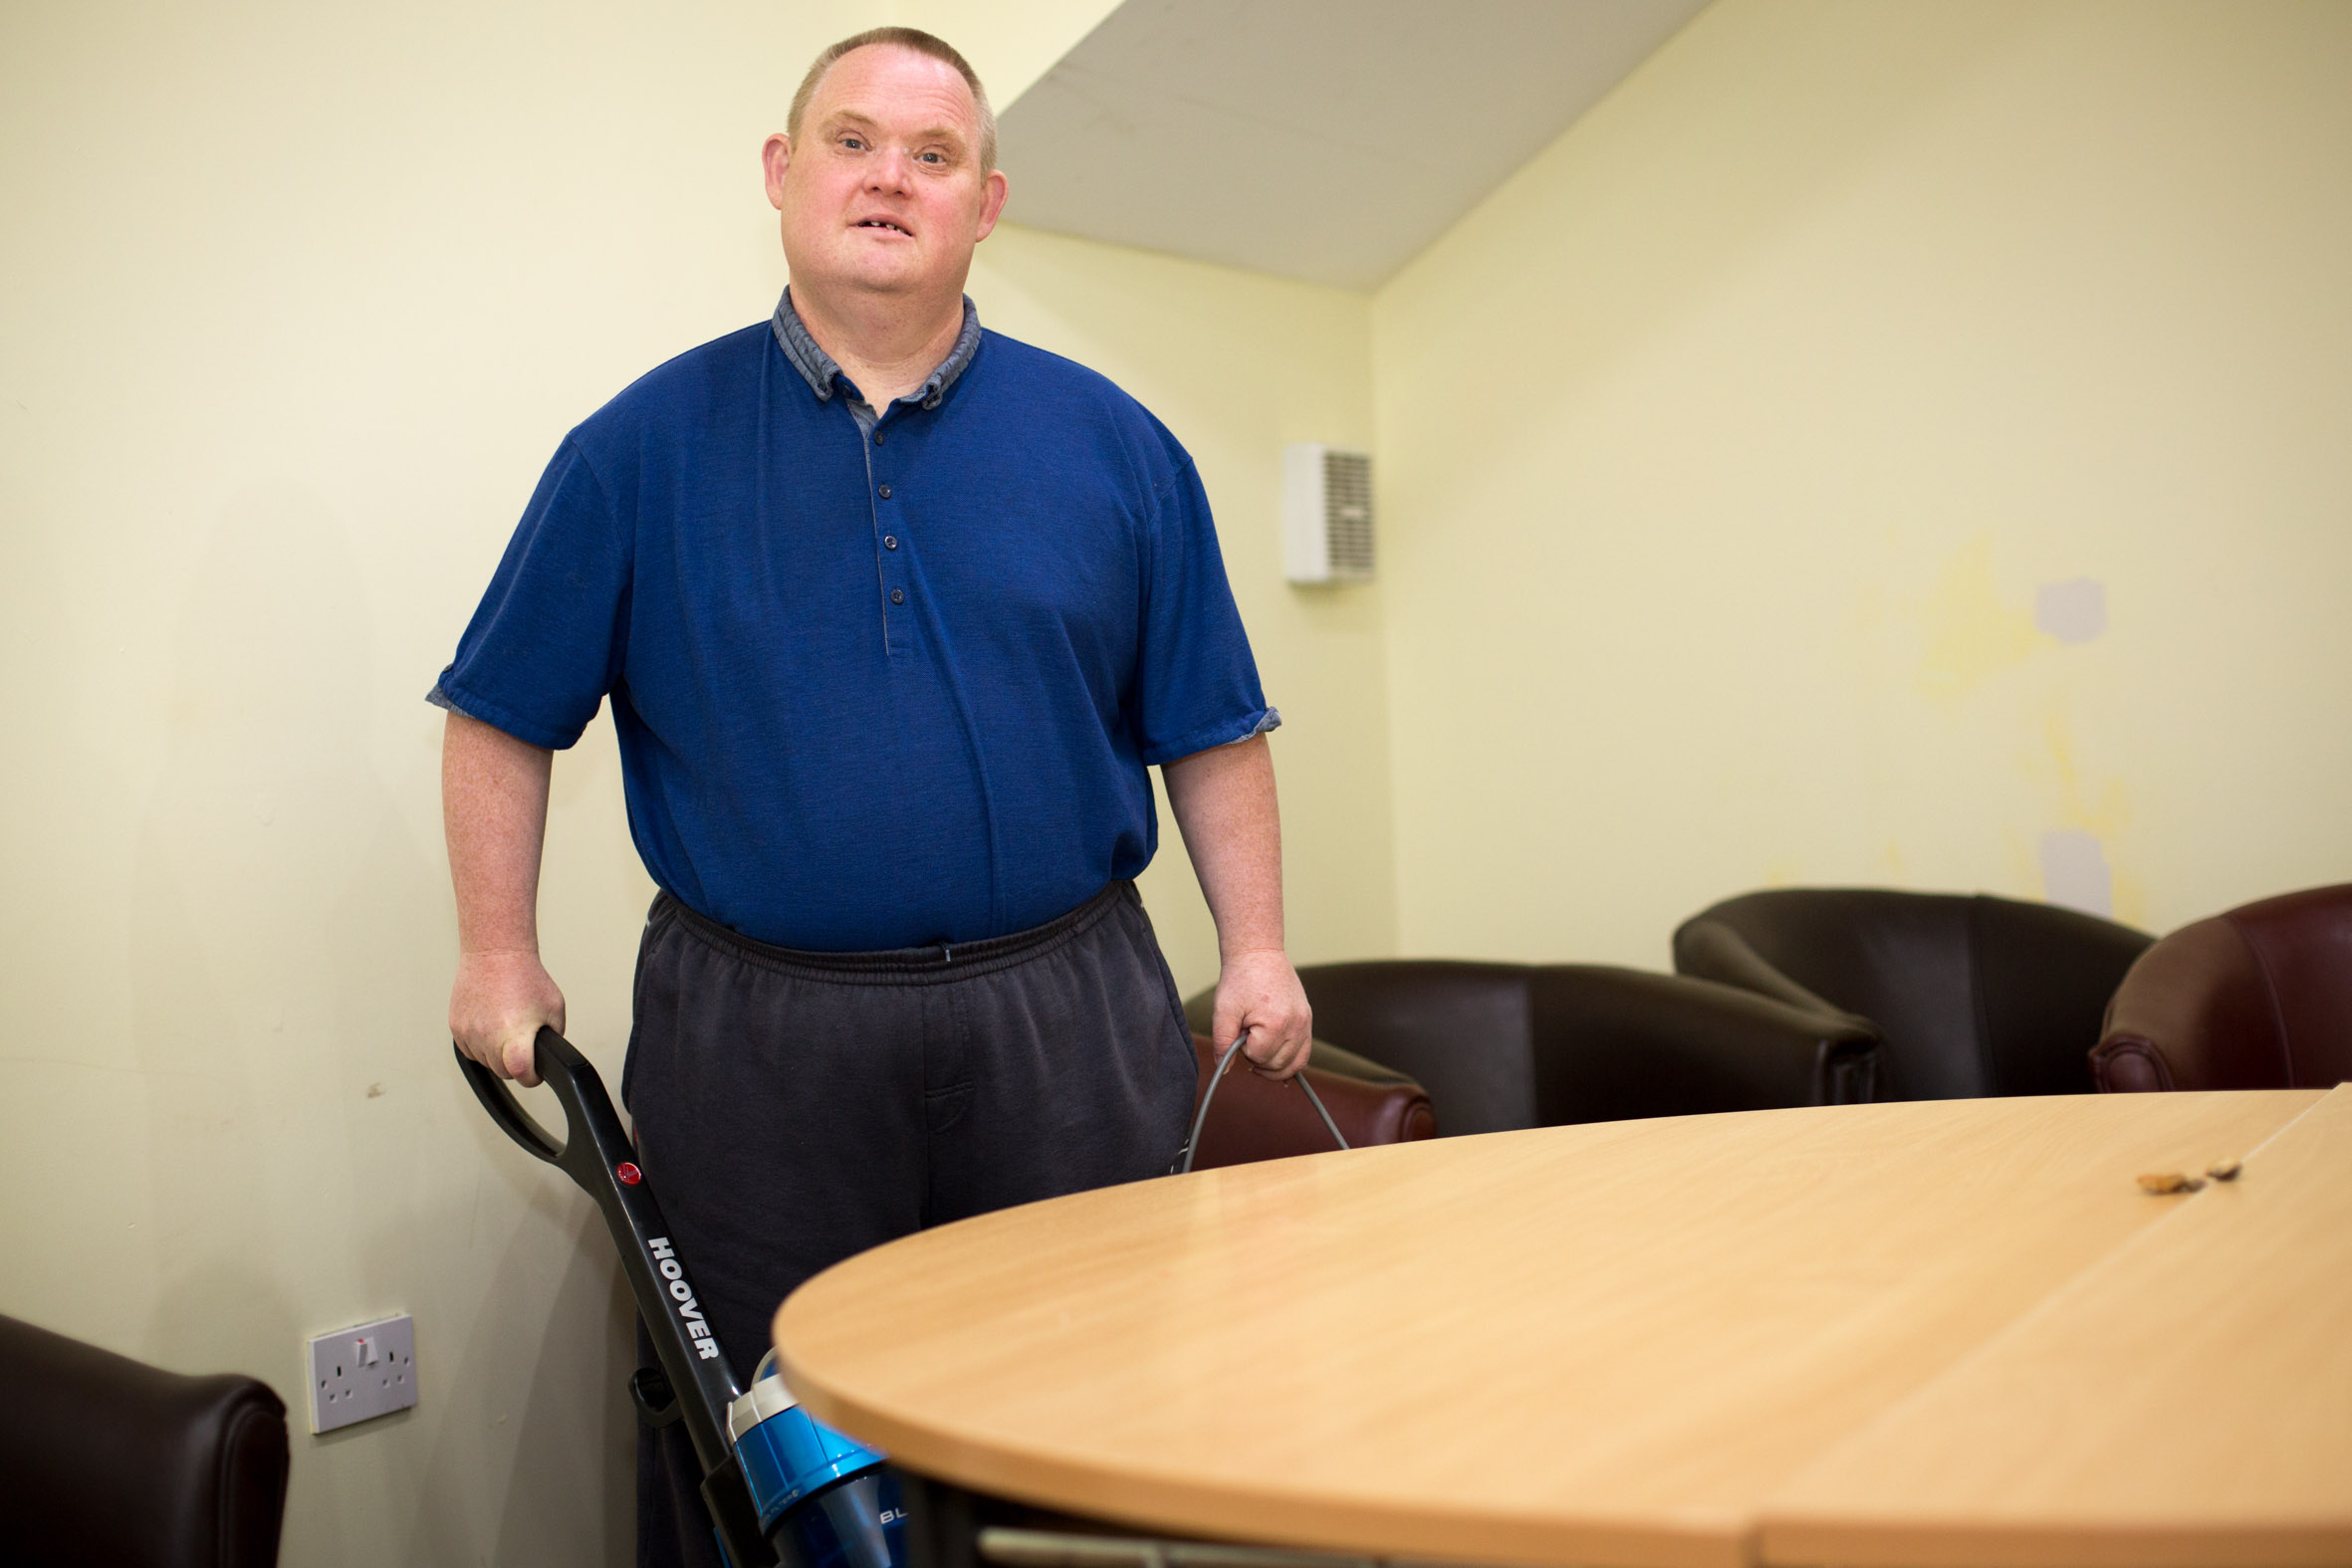 Image of service user